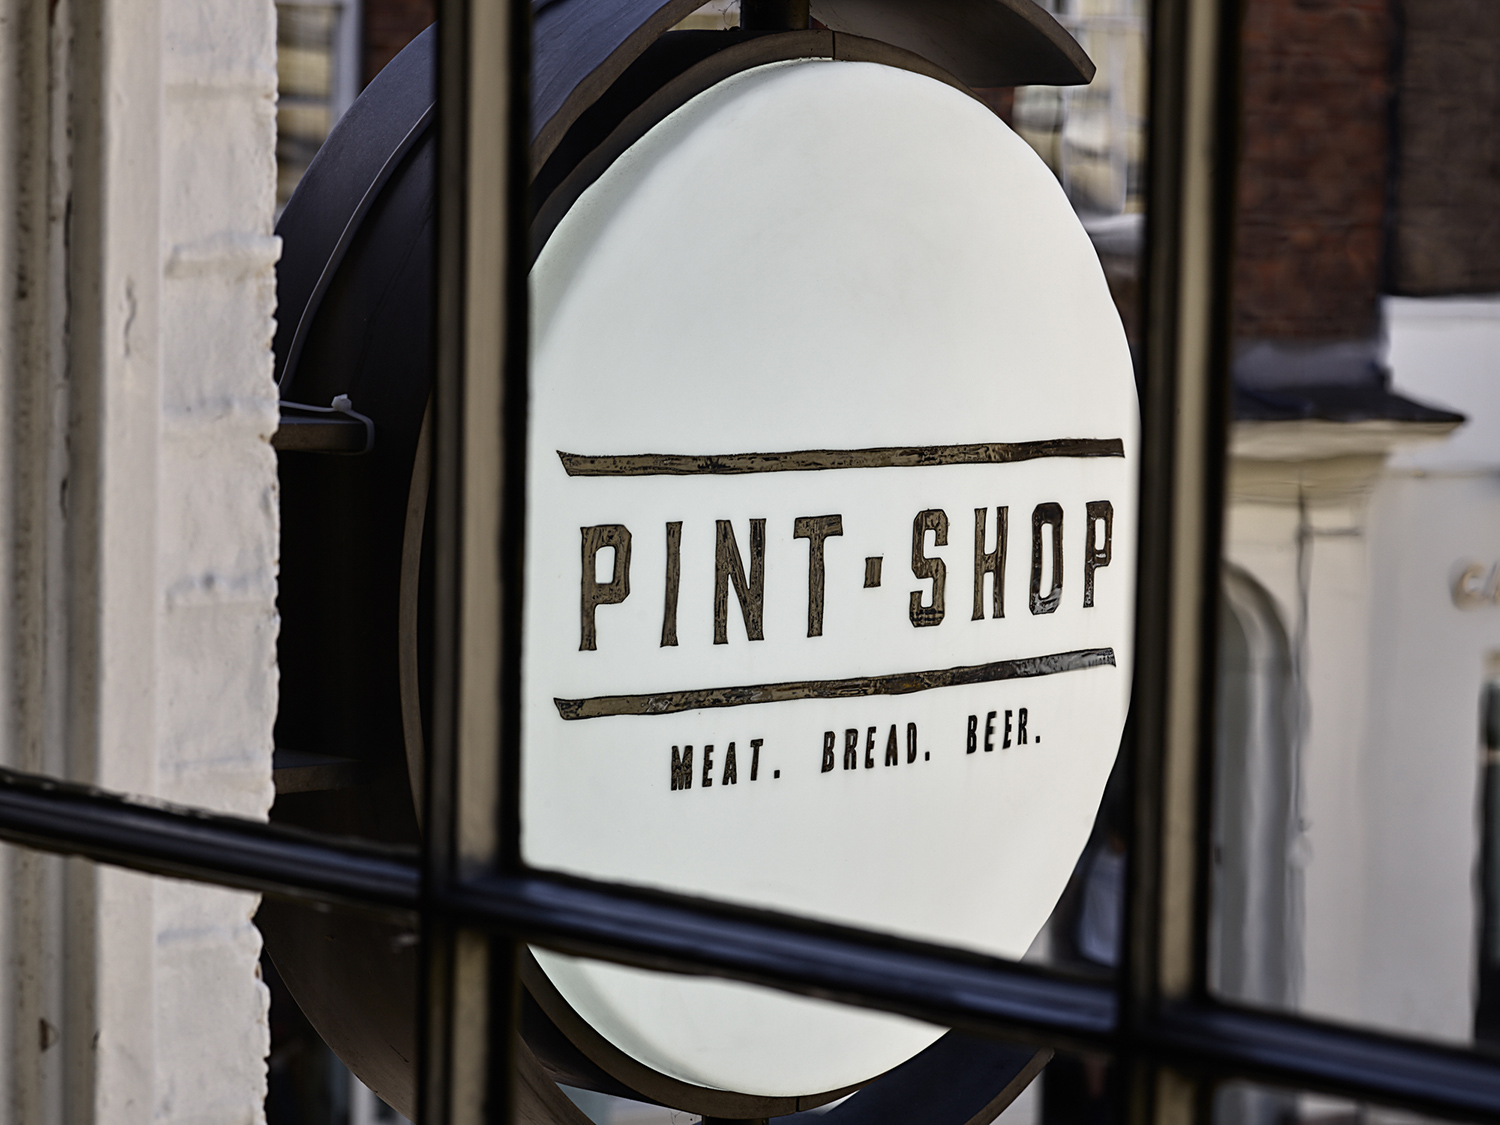 Black and white exterior blade sign for Pint Shop, designed by SAINT Design.